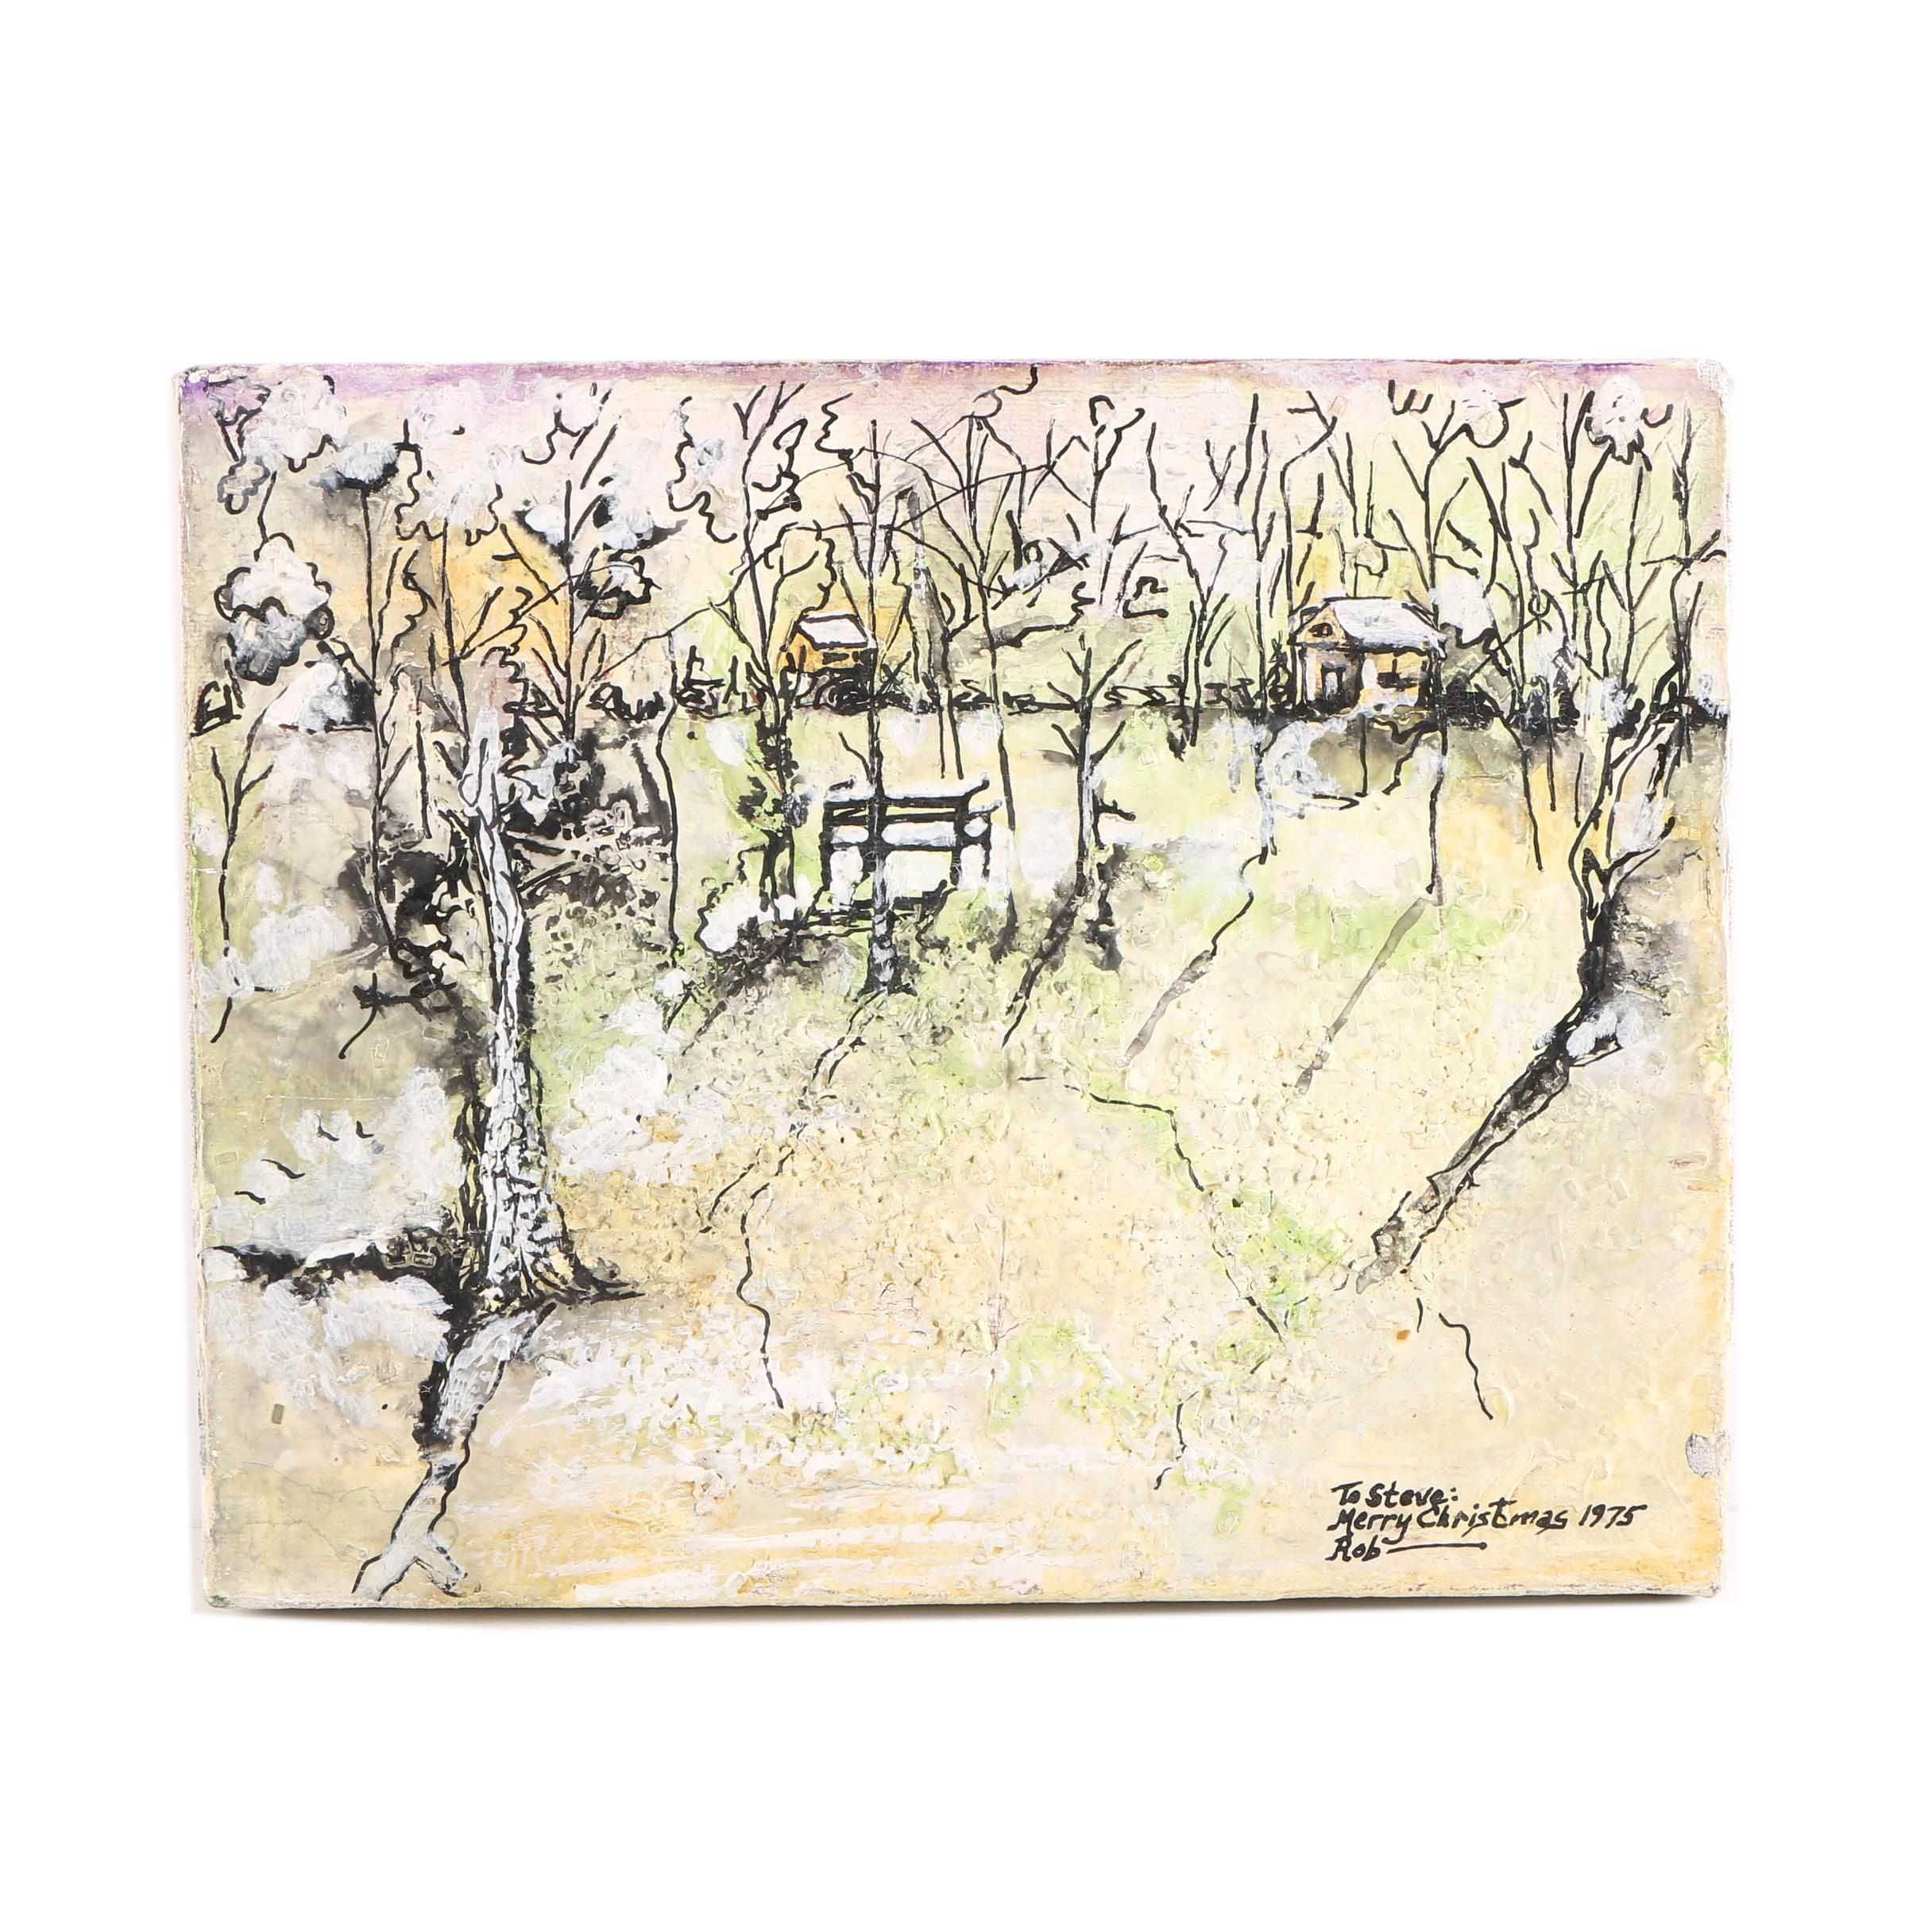 1975 Rob Gouache Painting on Canvas of a Winter Landscape